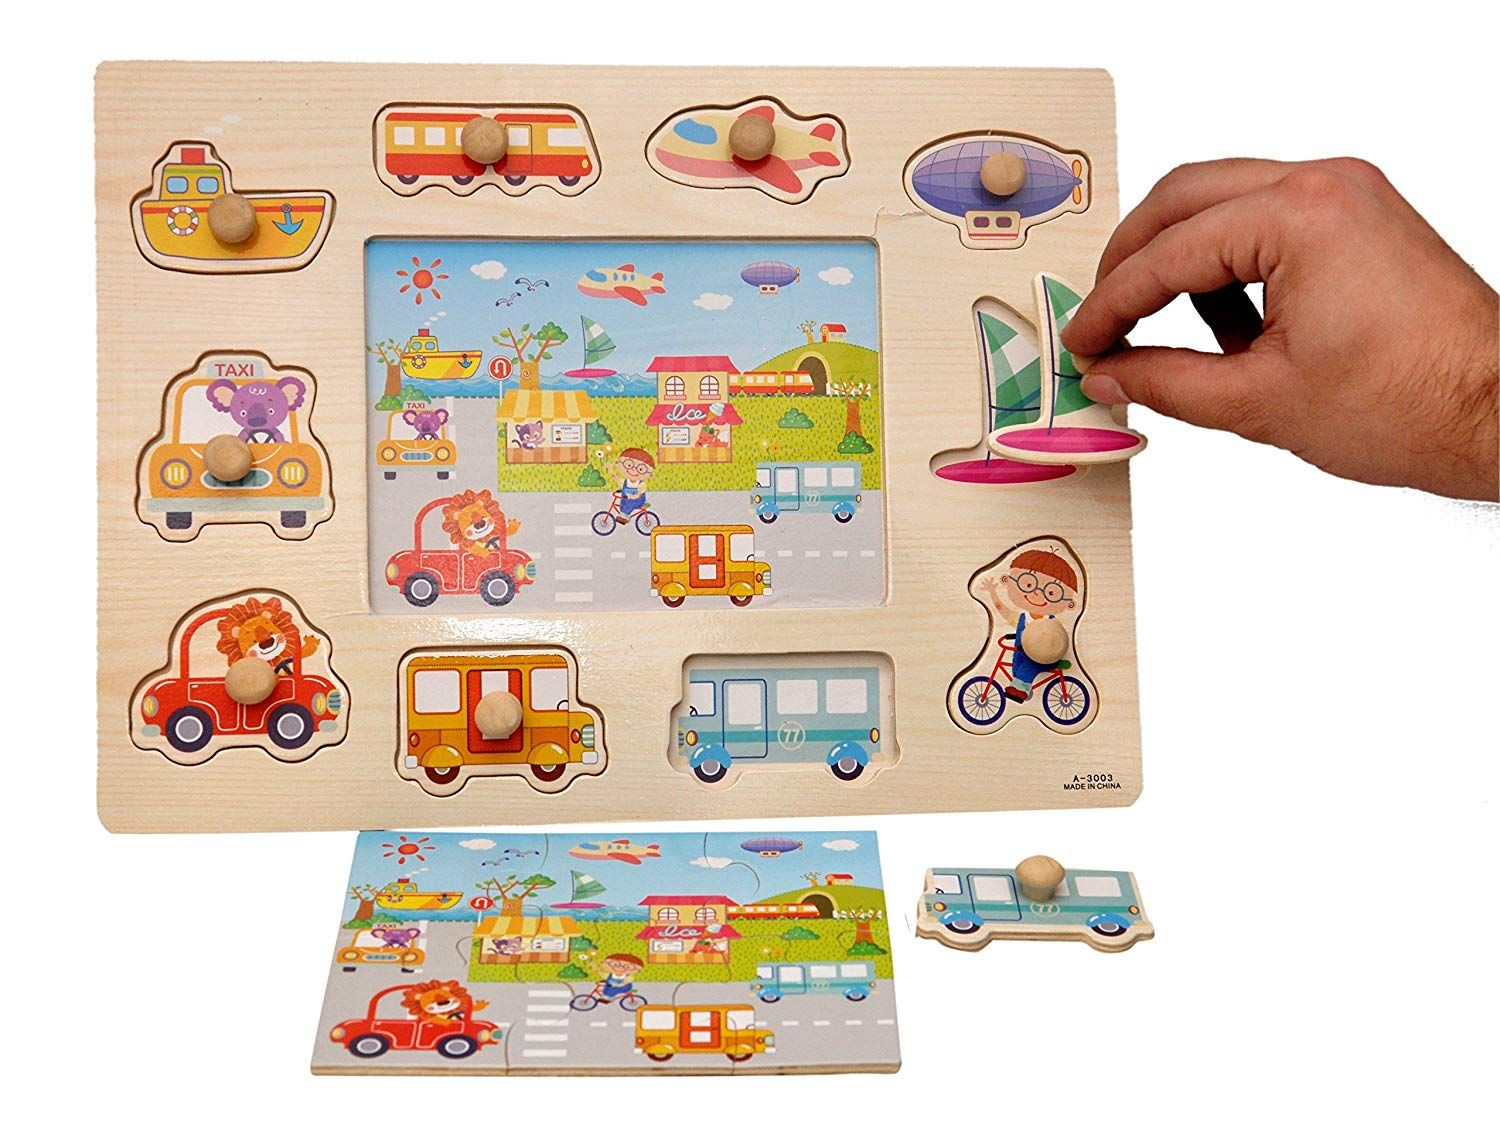 27 Wonderful Wooden Toys for 1 to 3 year olds - Safe, Non ...